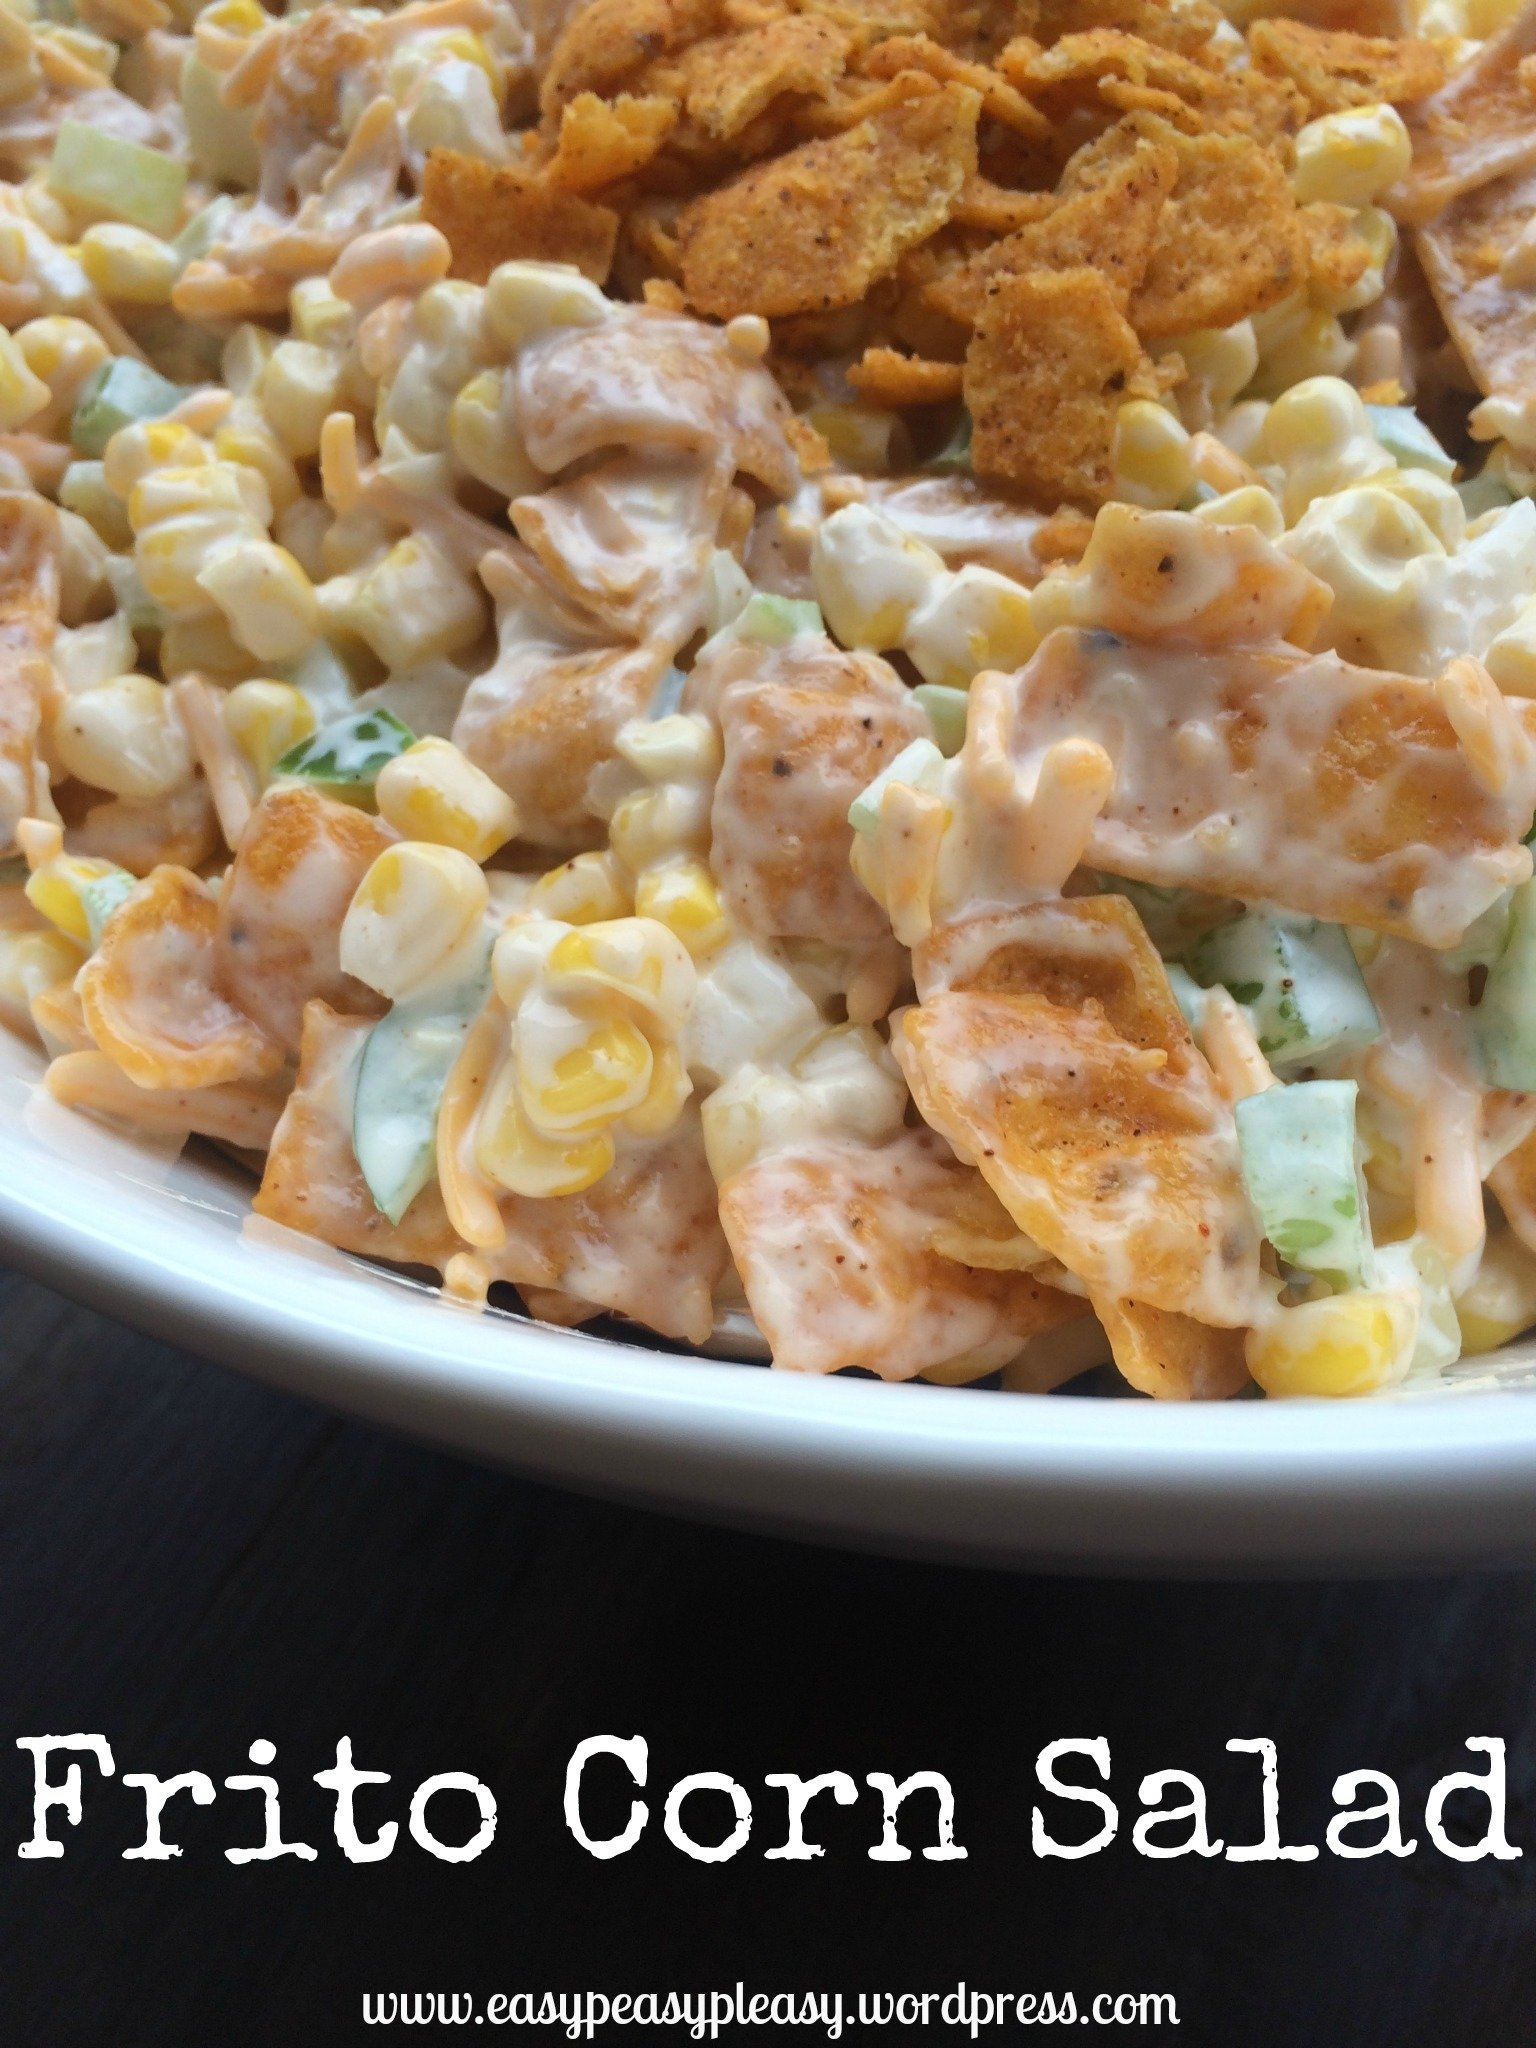 10 Lovely Quick And Easy Potluck Ideas the perfect potluck salad easy peasy pleasy 2020